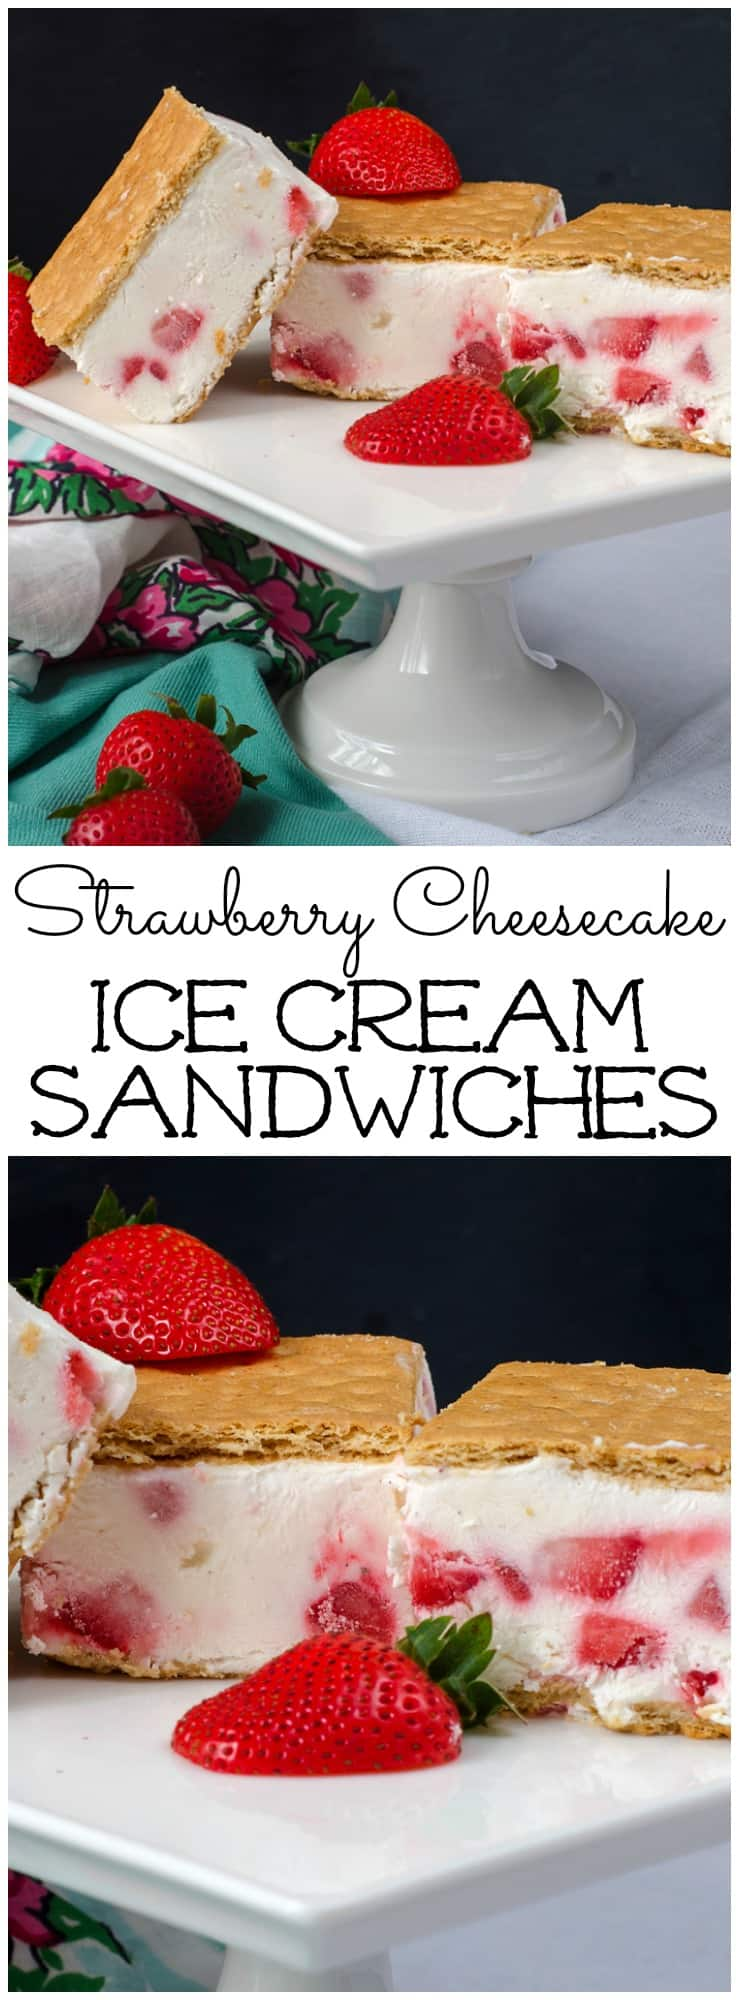 These Strawberry Cheesecake Ice Cream Sandwiches are made with Greek yogurt and fresh strawberries! They are easy to make and everyone will love them!